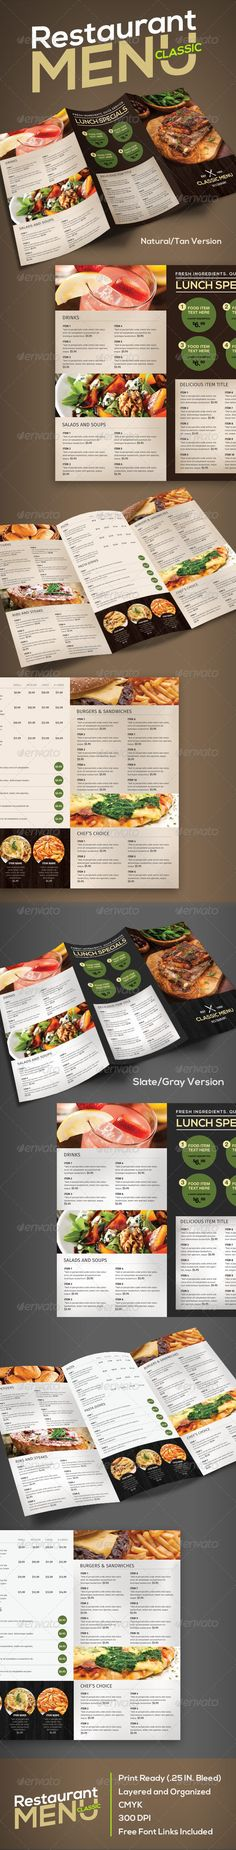 Restaurant Menu (Classic) Template #design #speisekarte Download: http://graphicriver.net/item/restaurant-menu-classic/7503885?ref=ksioks